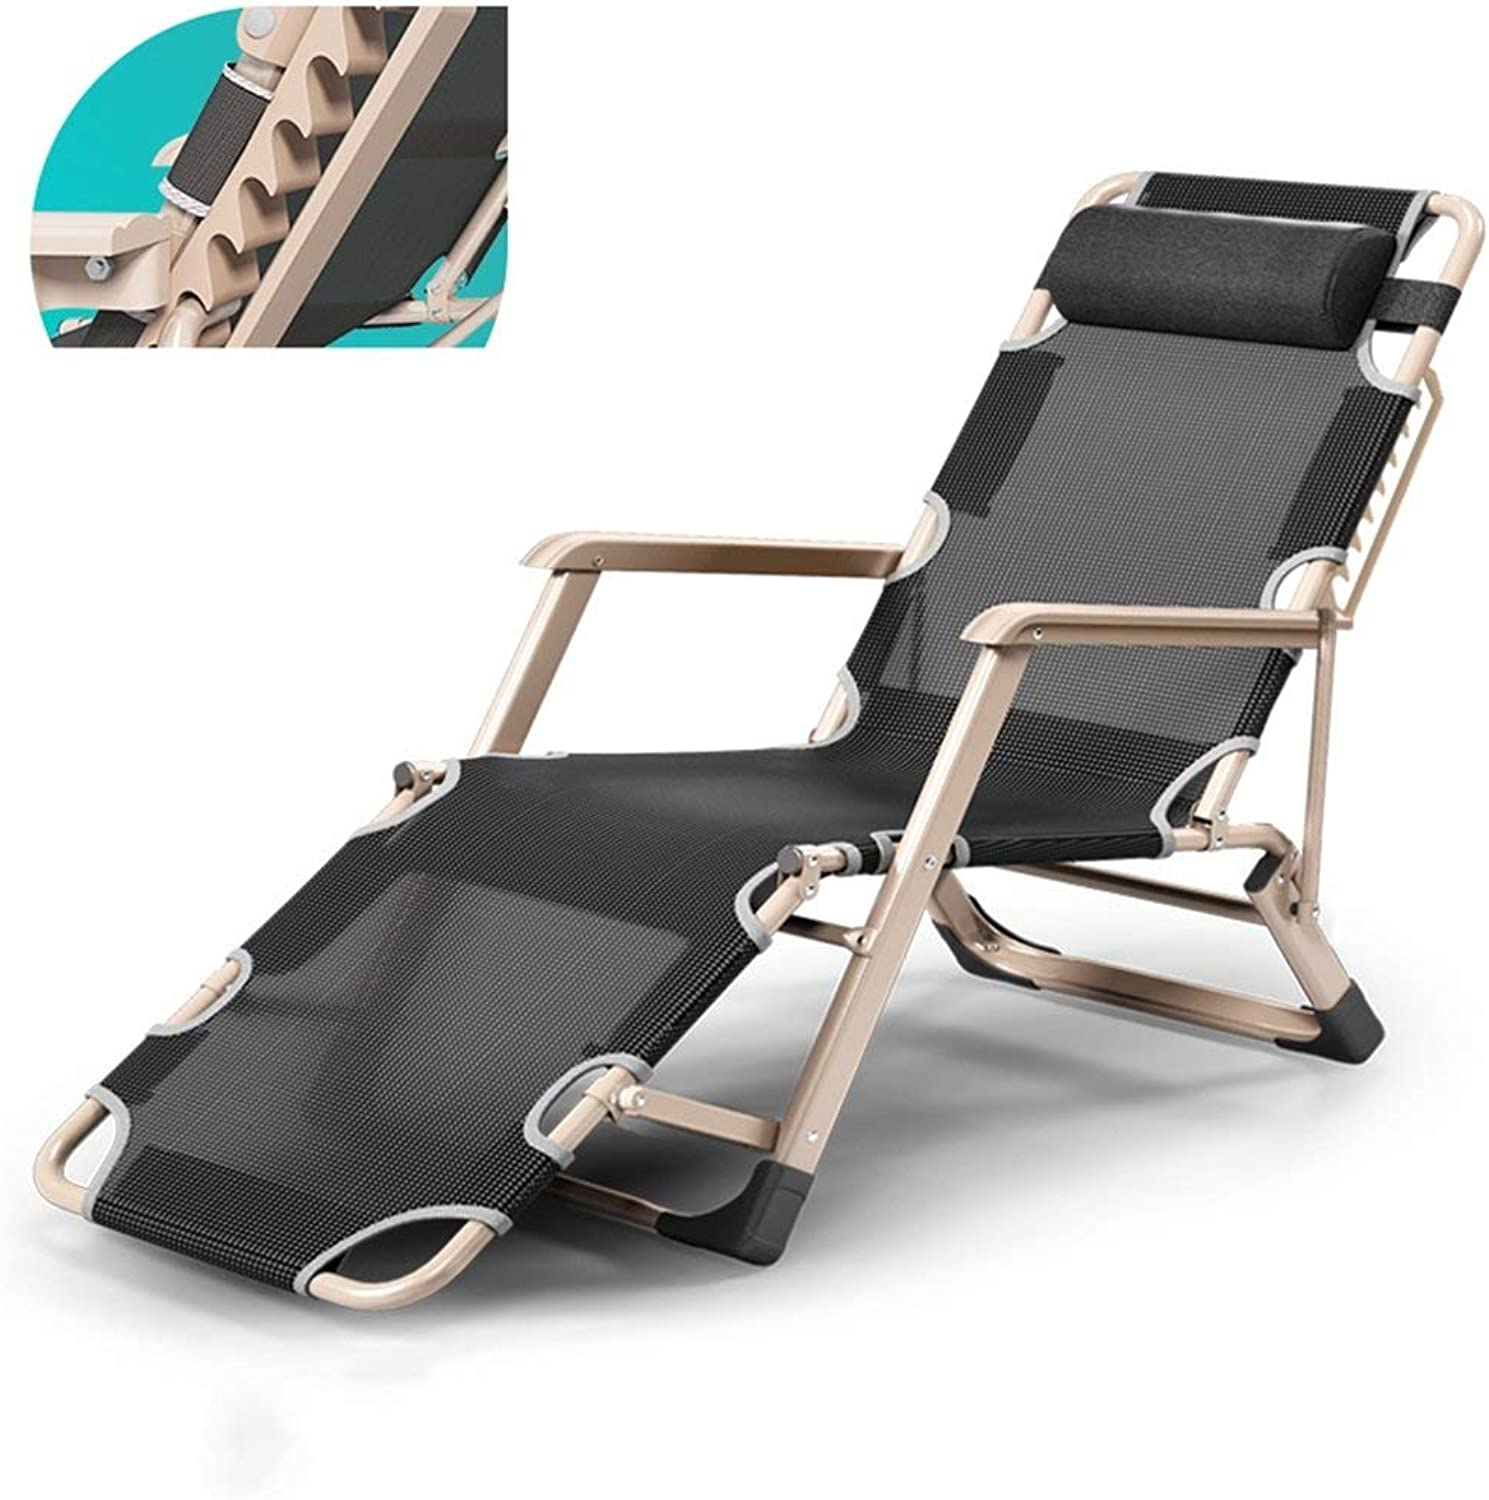 Folding Lounge Chair Portable Office Siesta Chair Summer Beach Chair Adjustable Sun Loungers Garden Lounge Chair Outdoor Camping Chair Removable Mat Black (color   A)